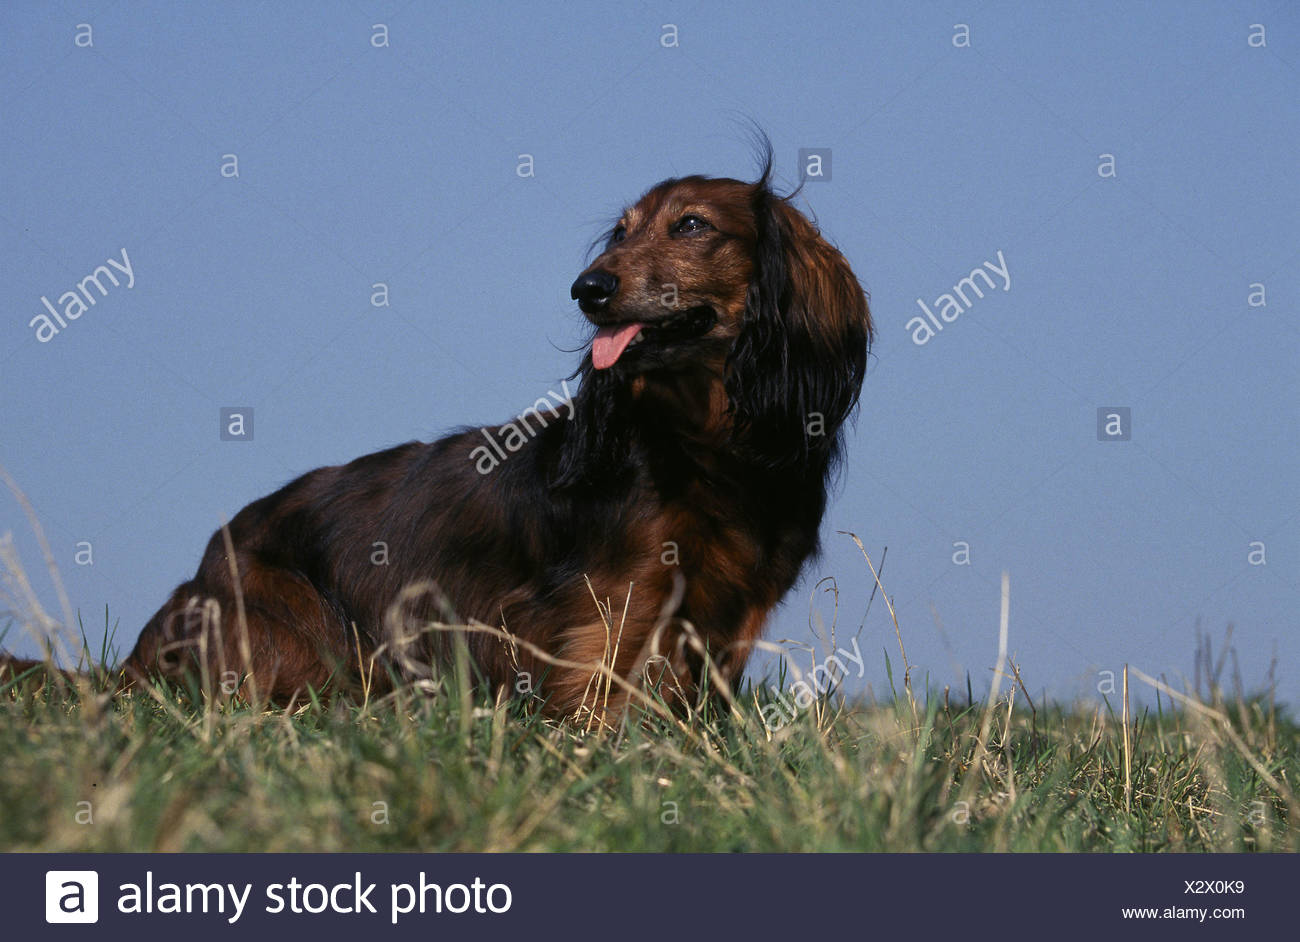 Dog Dachshund Teckel Breed Outside Stock Photos & Dog Dachshund ...